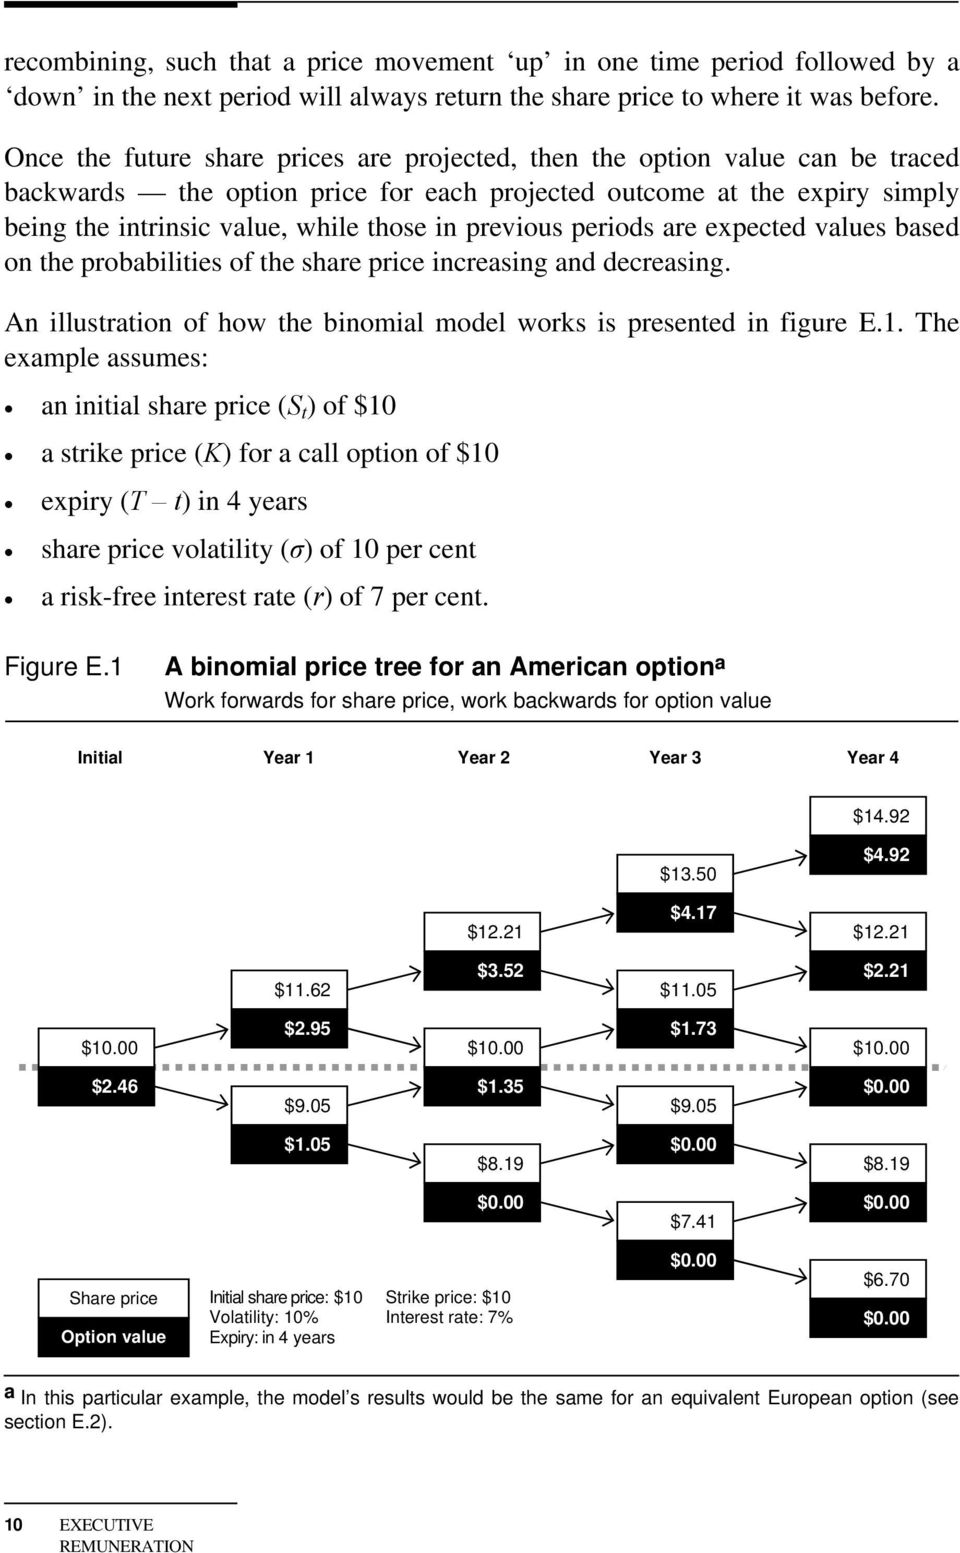 previous periods are expected values based on the probabilities of the share price increasing and decreasing. An illustration of how the binomial model works is presented in figure E.1.